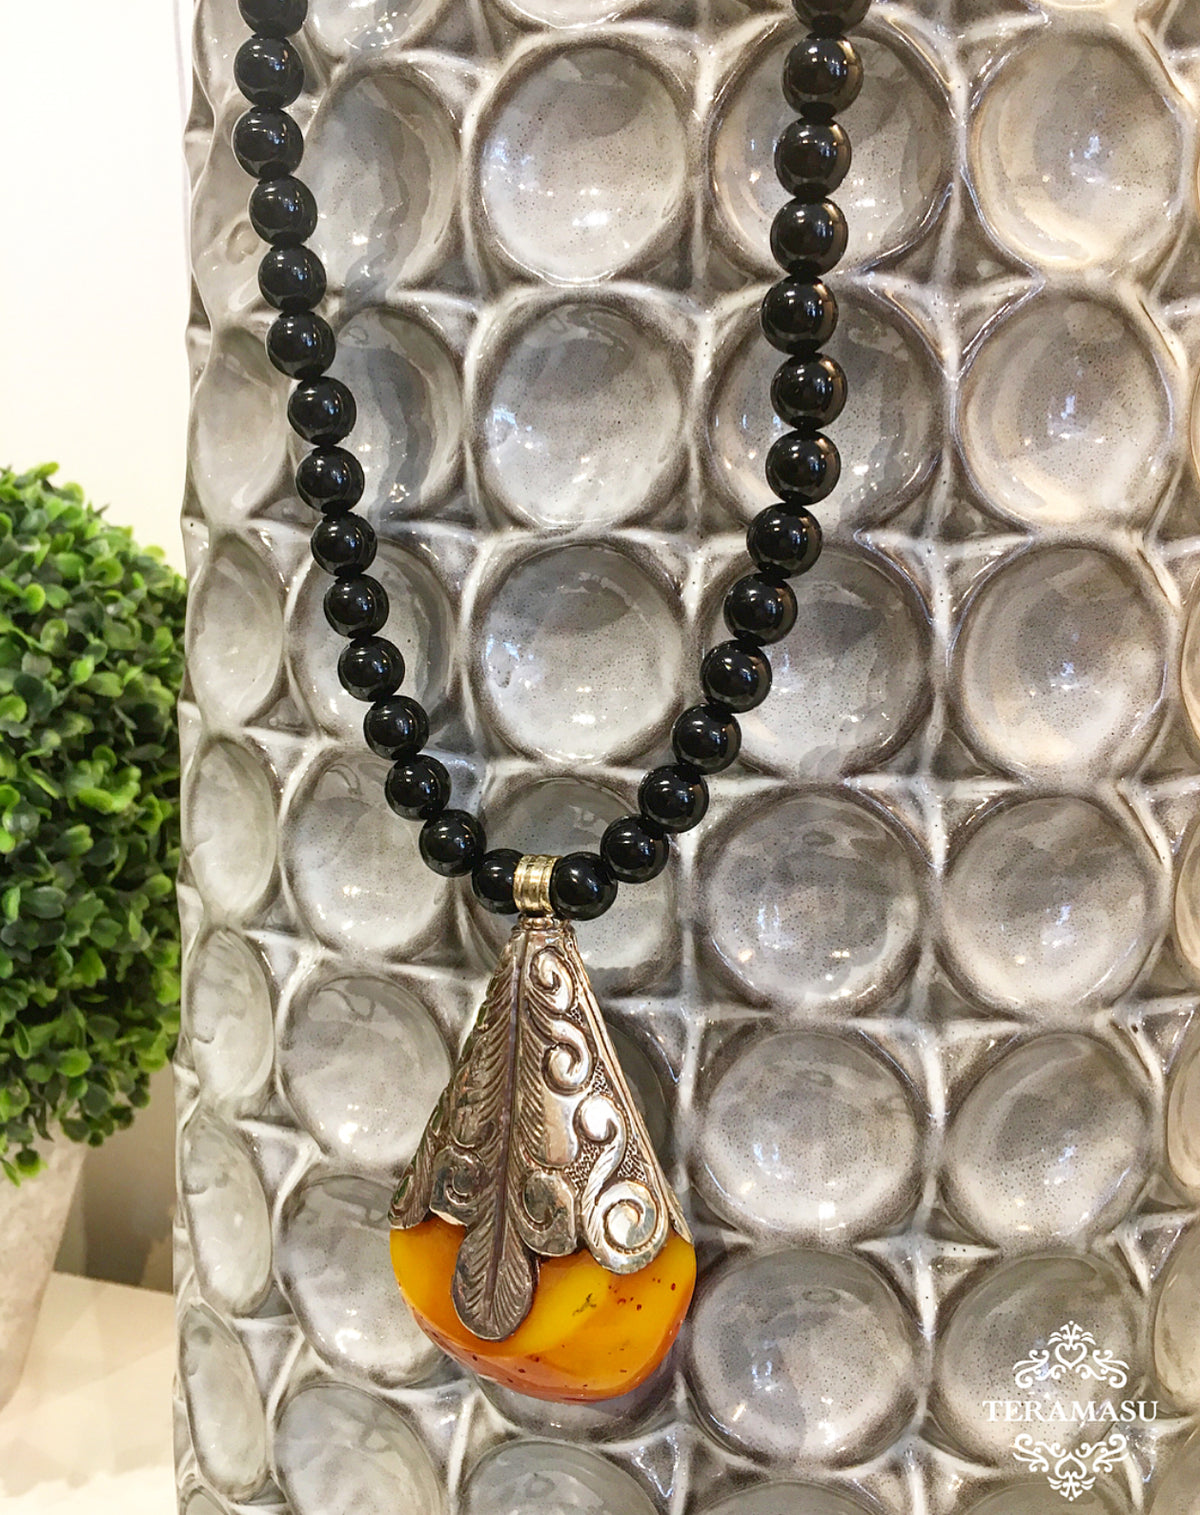 Living Ladylike: Gorgeous & New Handmade Designer Teramasu Black Onyx Necklace with One-of-a-Kind Silver and Amber Stone Pendant